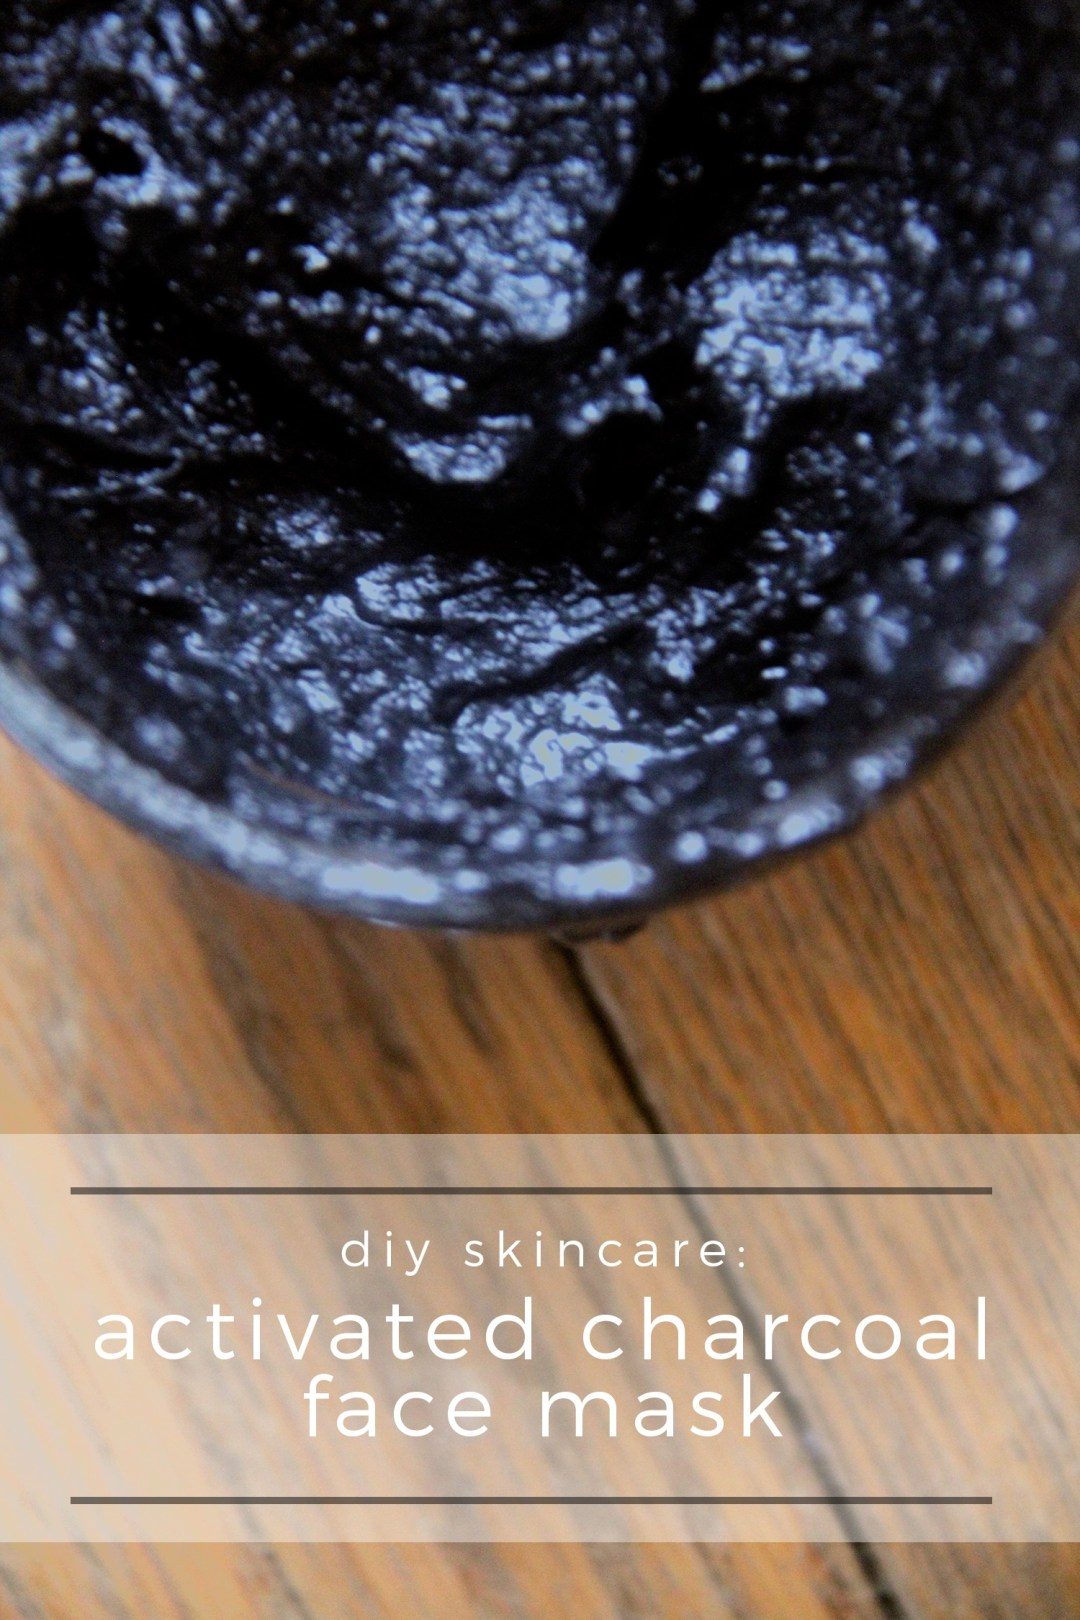 DIY Activated Charcoal Facemask. Because it's hard to pass up smearing black stuff all over your face and giggling hysterically while taking a million selfies. Oh, and the lure of luxuriously soft skin. That's hard to pass up too.#diyfacemask #diyskincare #diybeauty #activatedcharcoal #charcoalfacemask #craftingwithkids #craftykids #kidscrafts #athomespa #facemask #skincare